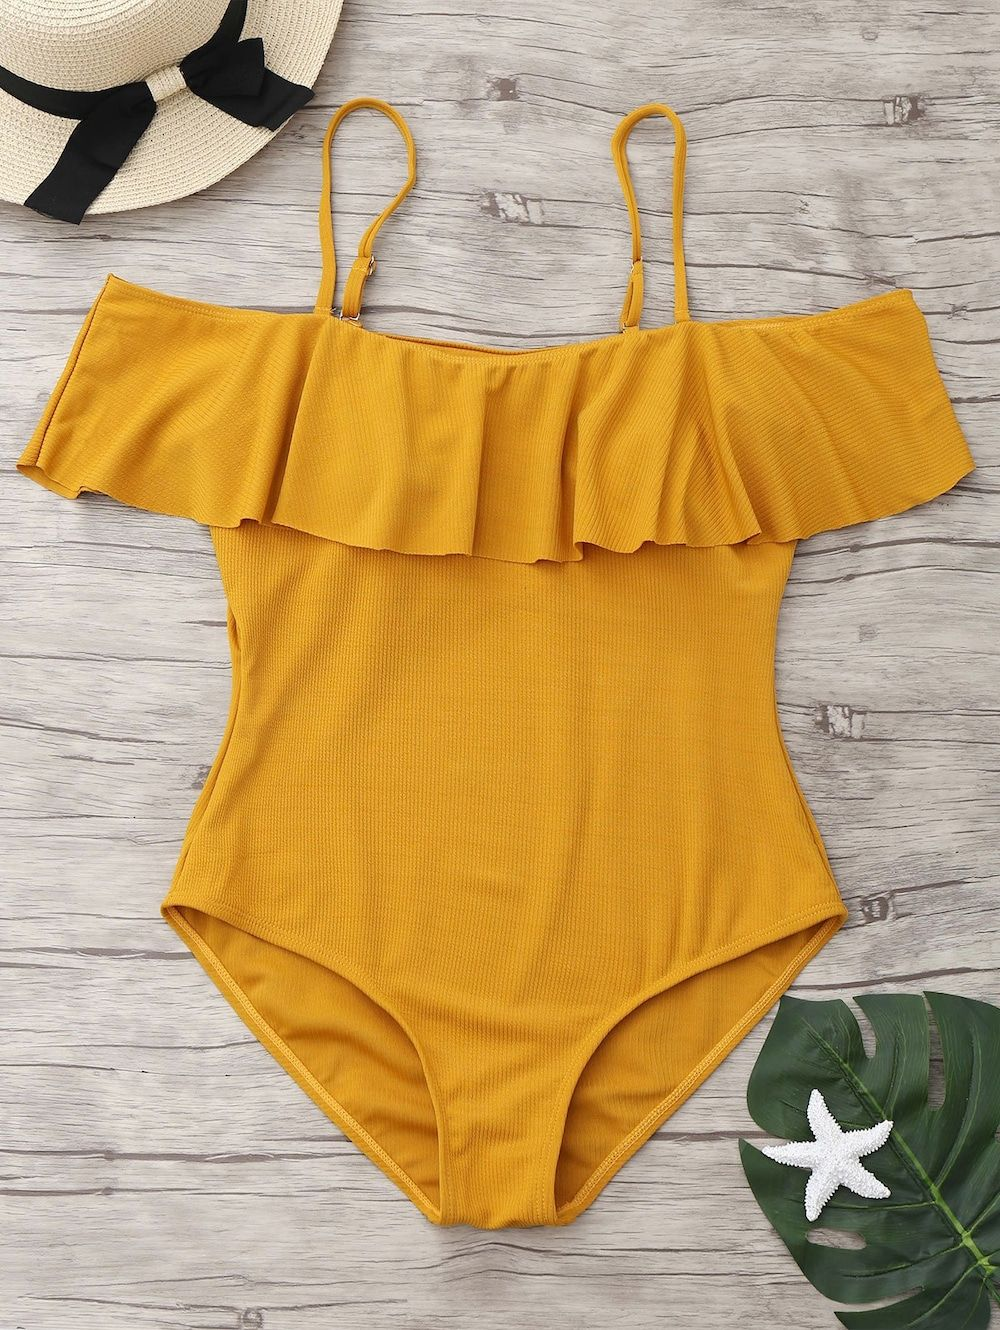 fcdb778e36 Ribbed Knit Flounce One Piece Swimsuit - GINGER M | Just Keep ...